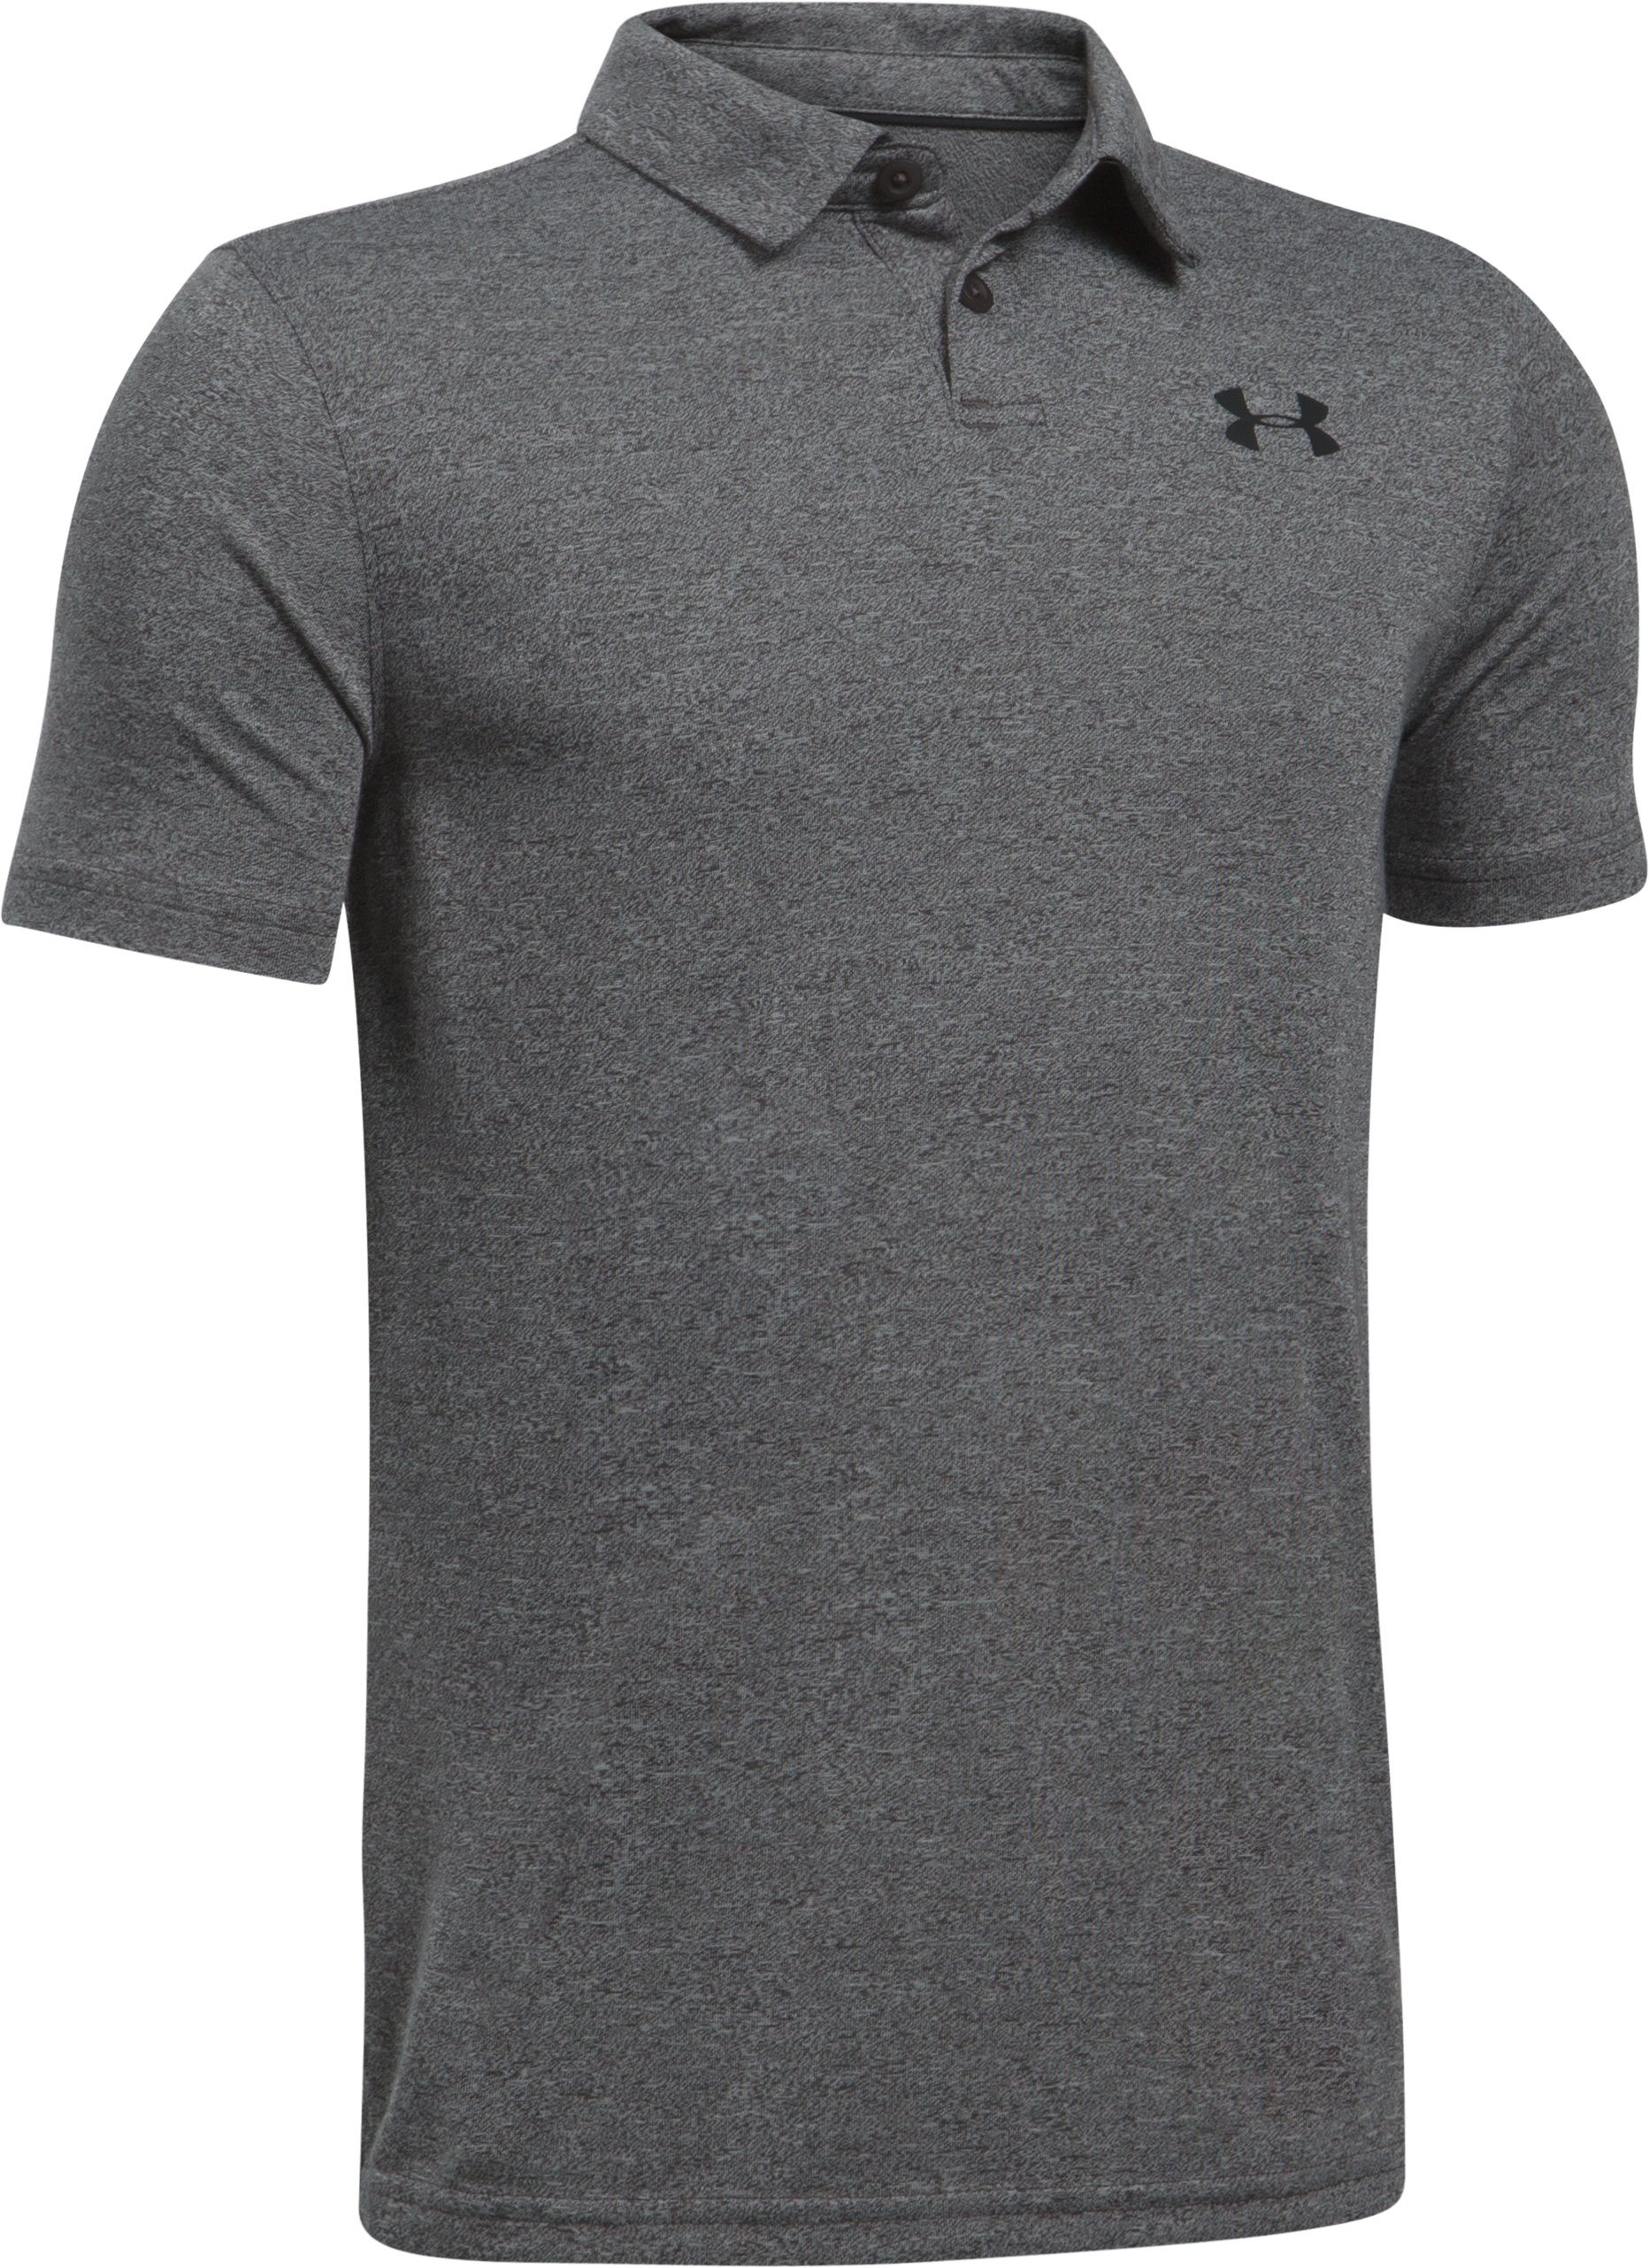 Boys' UA Threadborne Polo, Carbon Heather